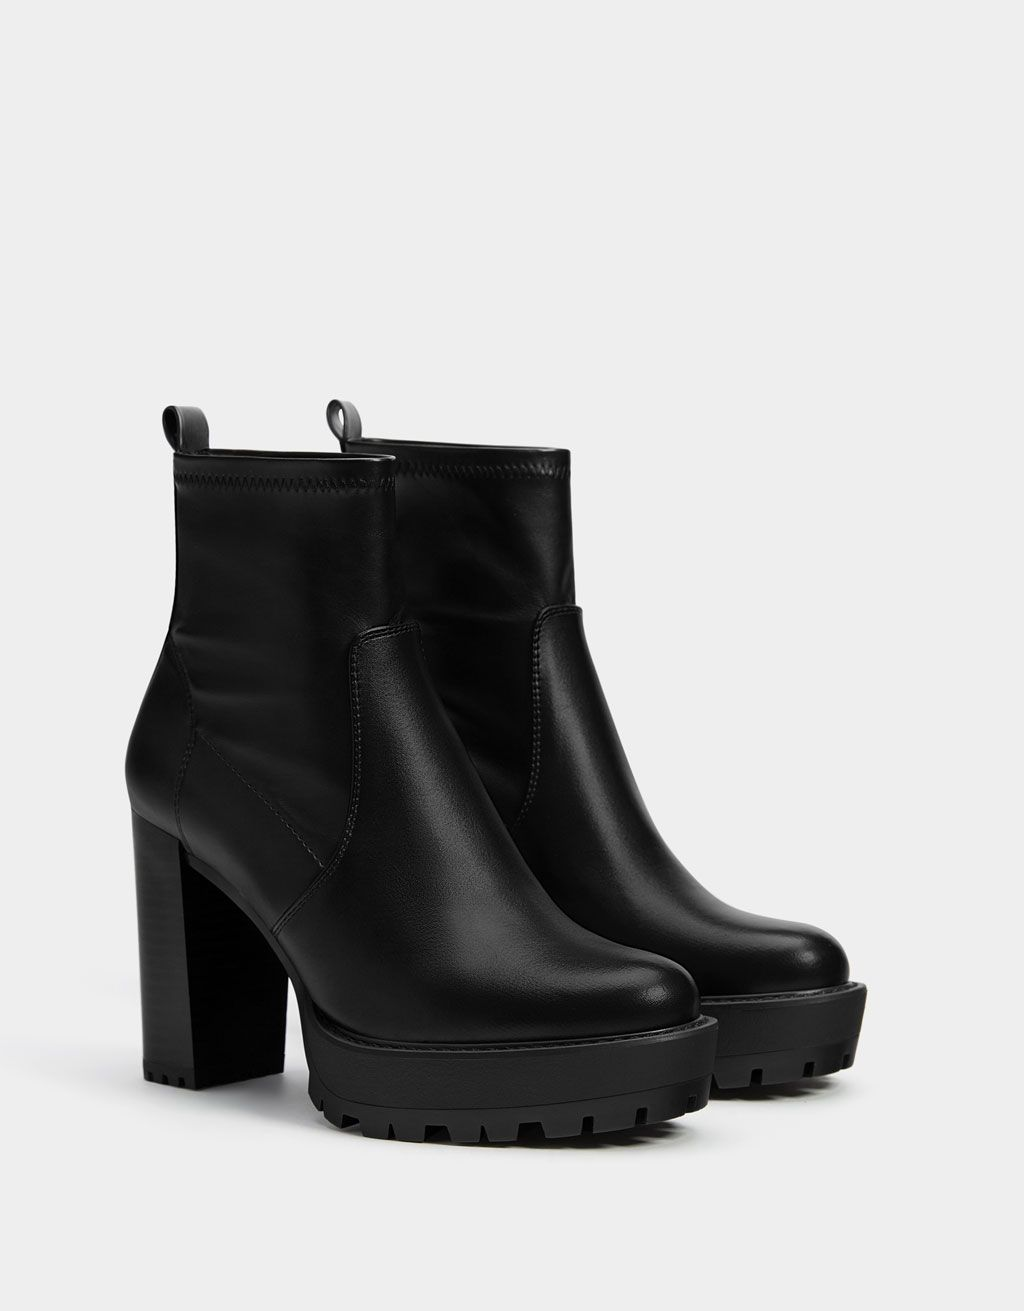 5d80db9082e7 Platform high-heel ankle boots. Discover this and many more items in  Bershka with new products every week